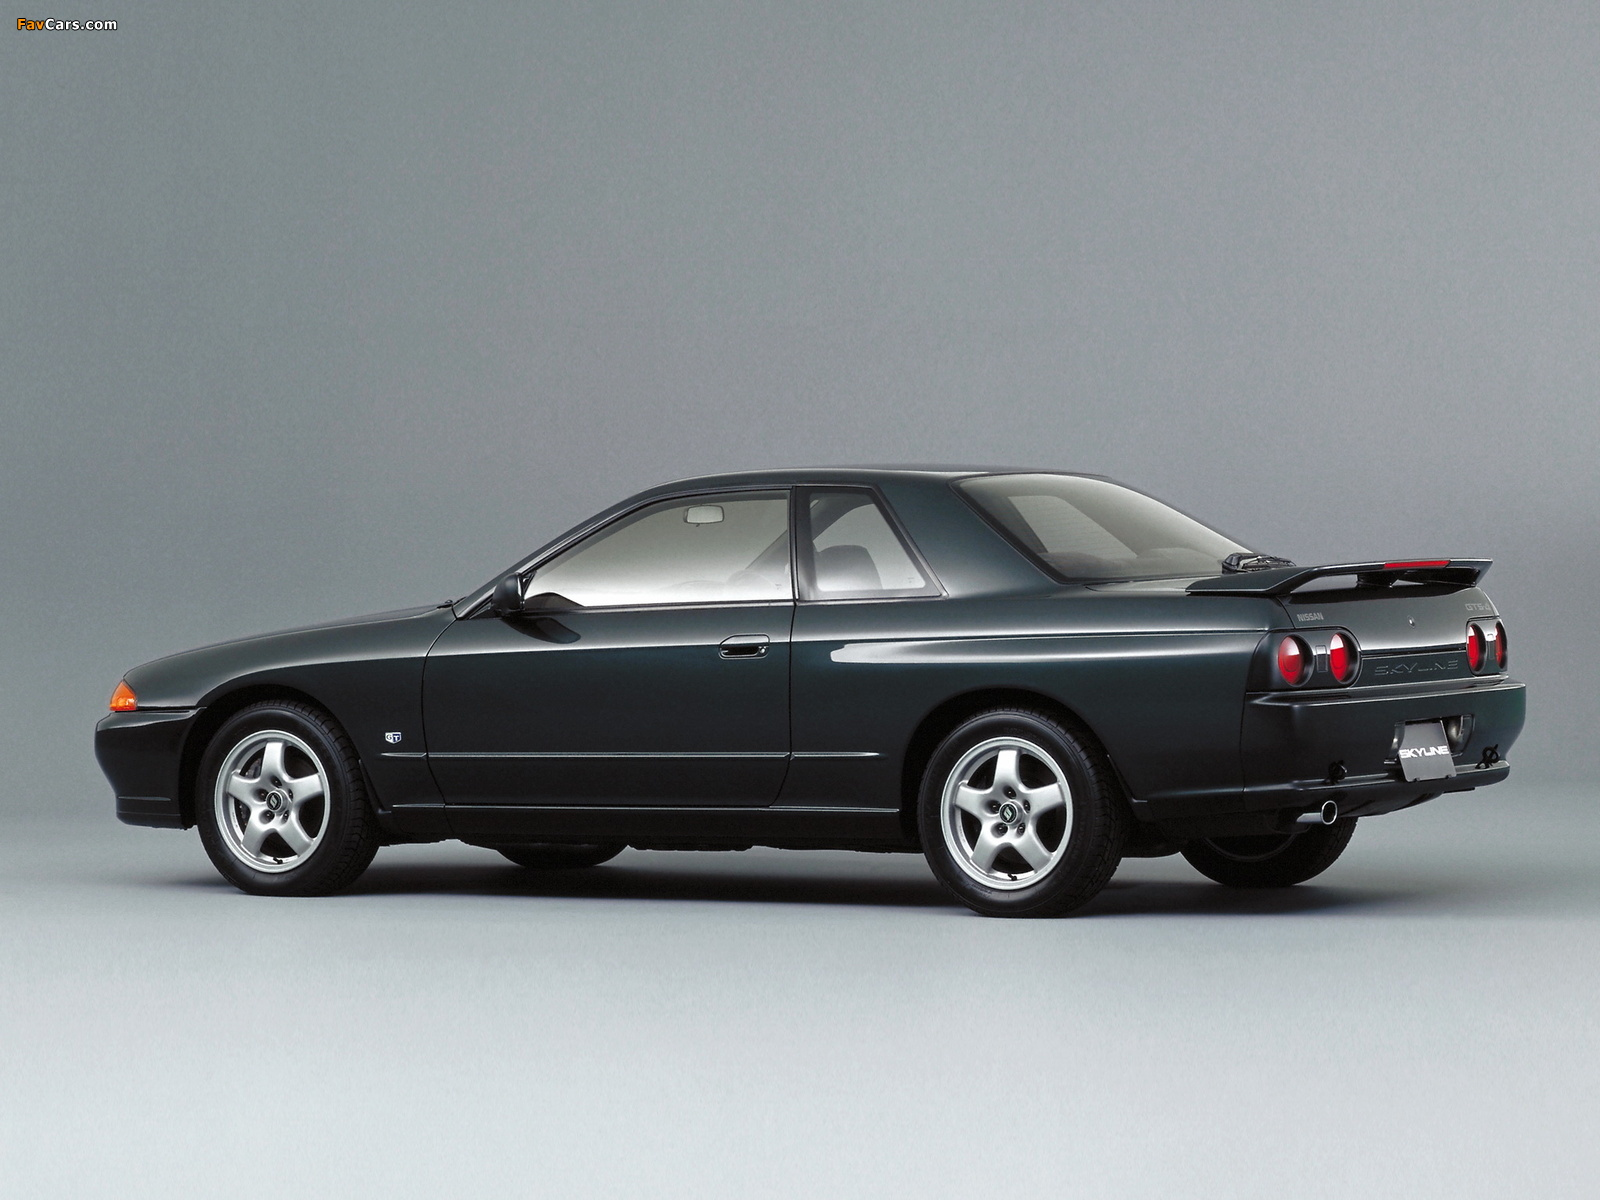 Pictures Of Nissan Skyline Gts 4 Krnr32 1991 93 1600x1200